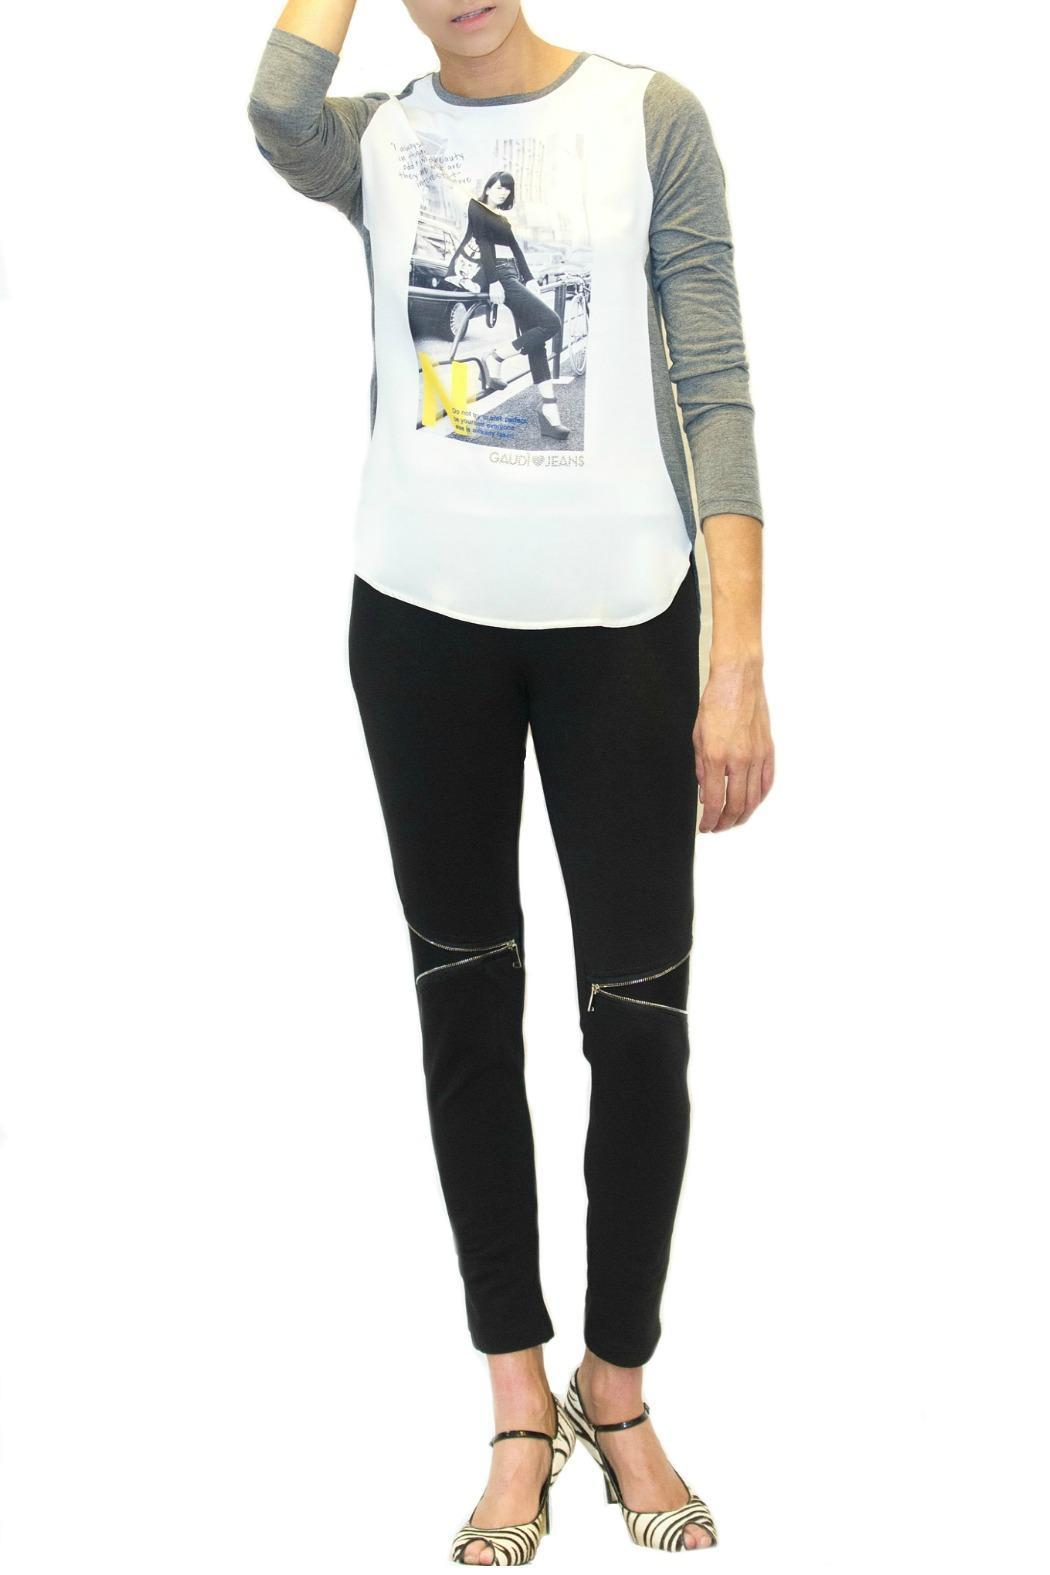 gaudi jeans lady woven tee from portland by moods of florence shoptiques. Black Bedroom Furniture Sets. Home Design Ideas